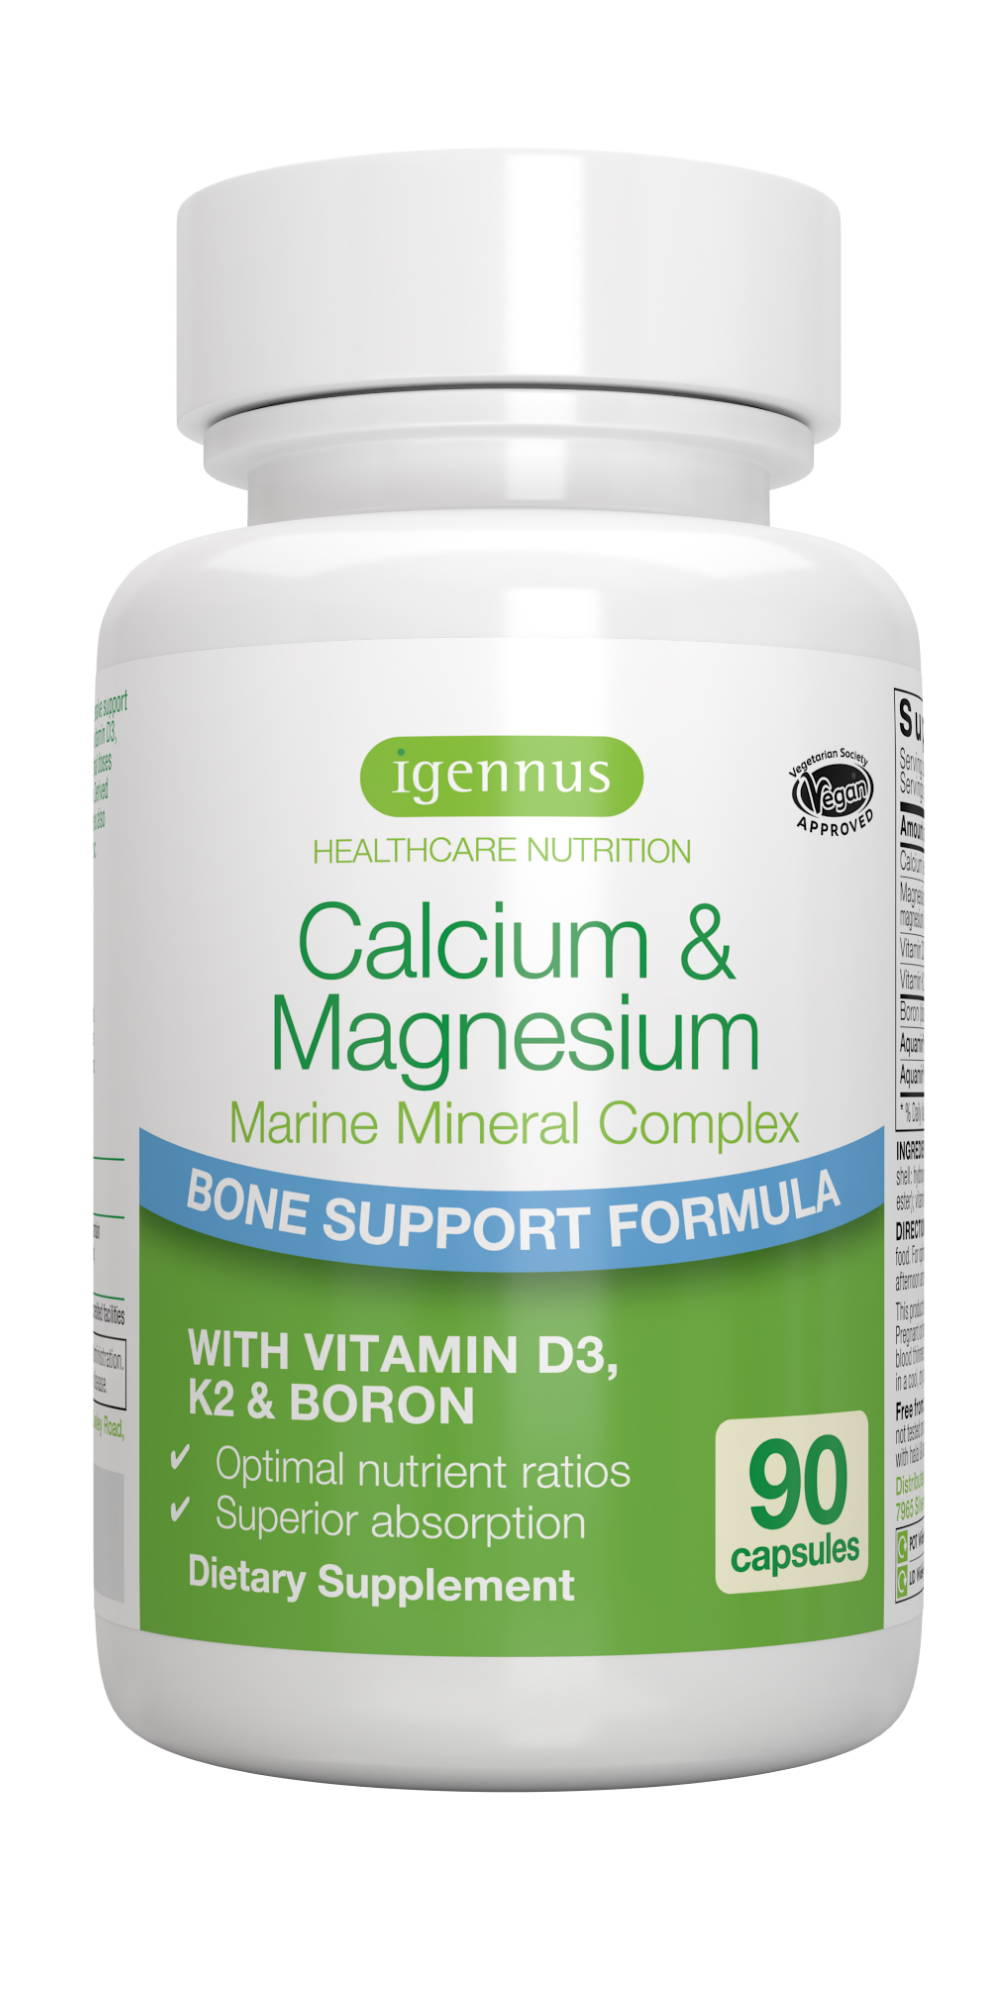 calcium magnesium marine mineral complex provides important nutrients for healthy teeth